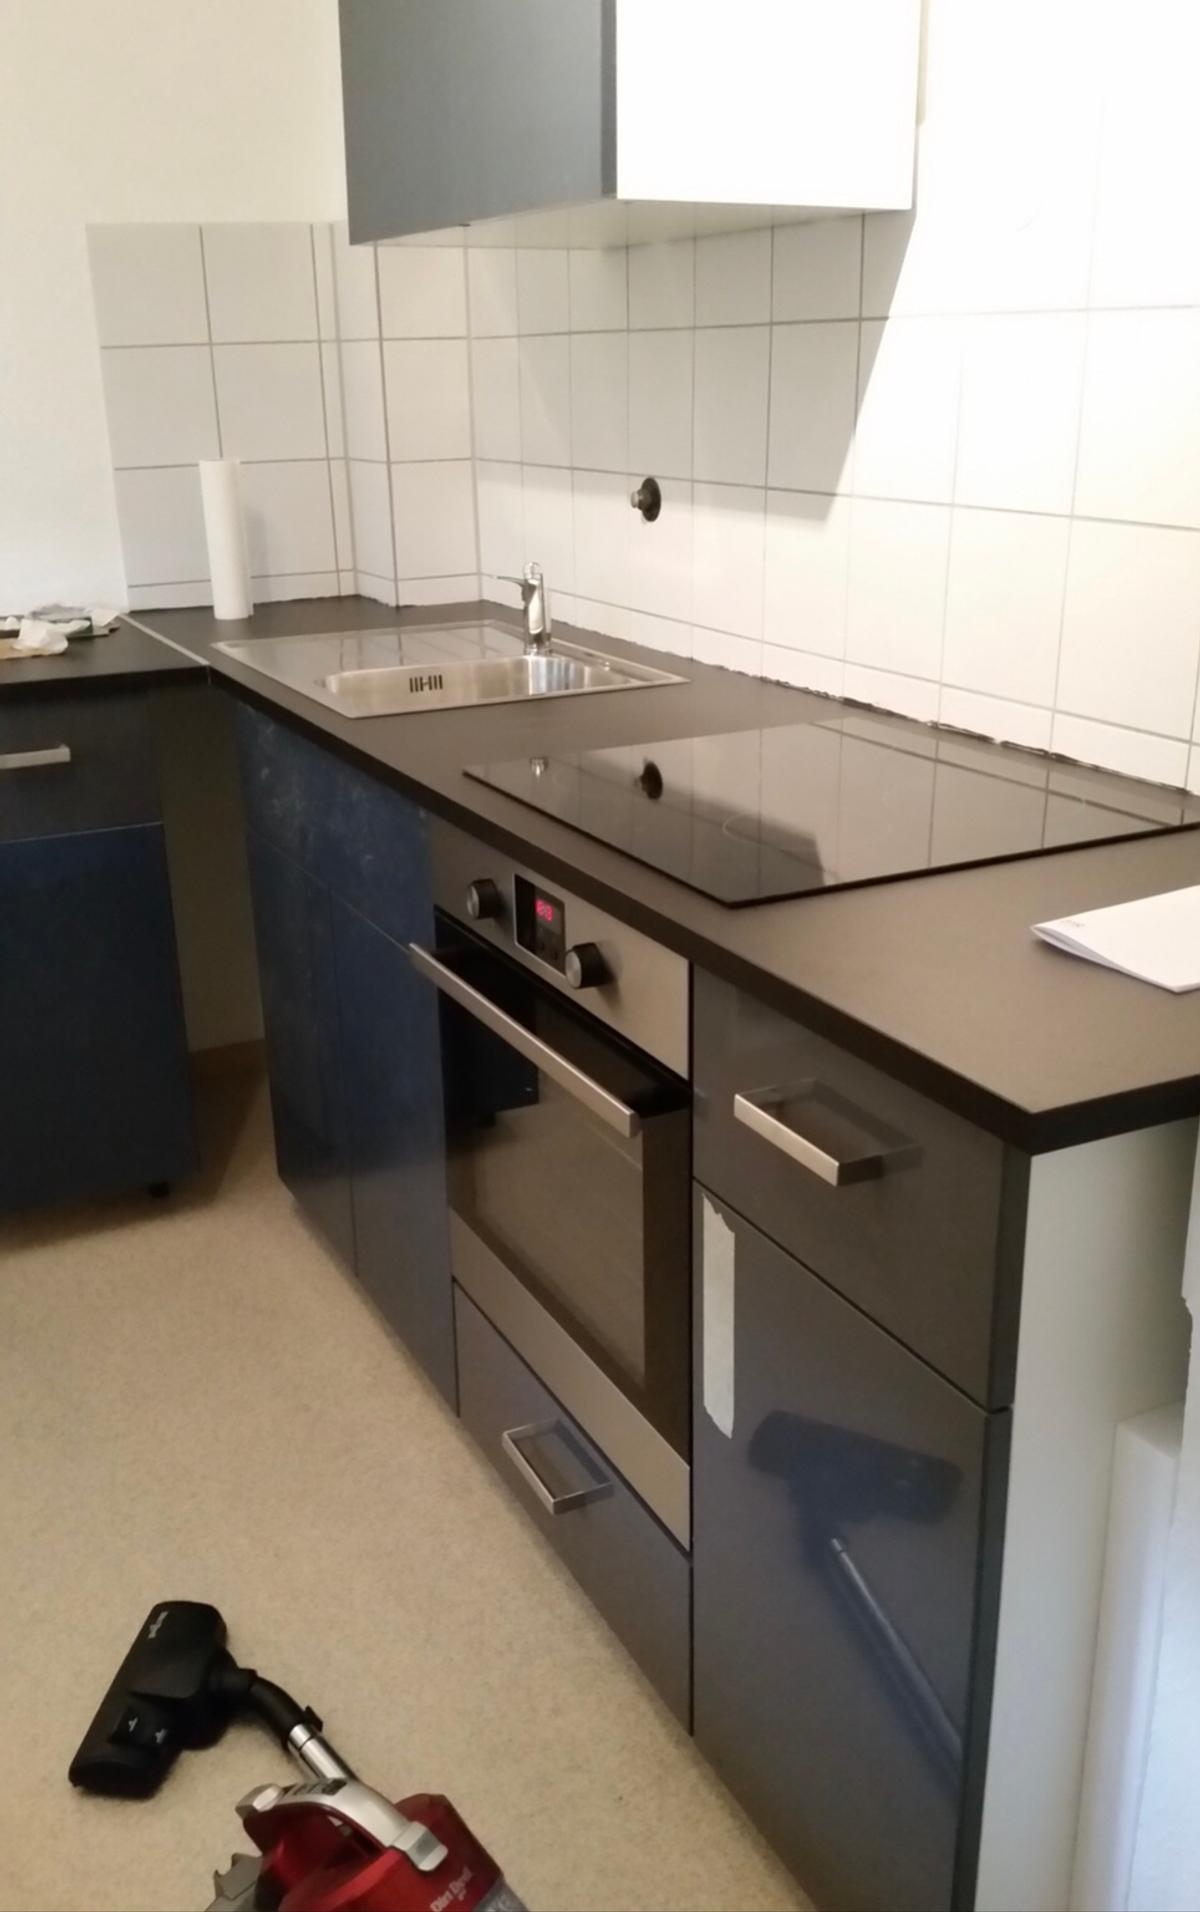 Kuchenschranke Ikea In 75365 Calw For 250 00 For Sale Shpock